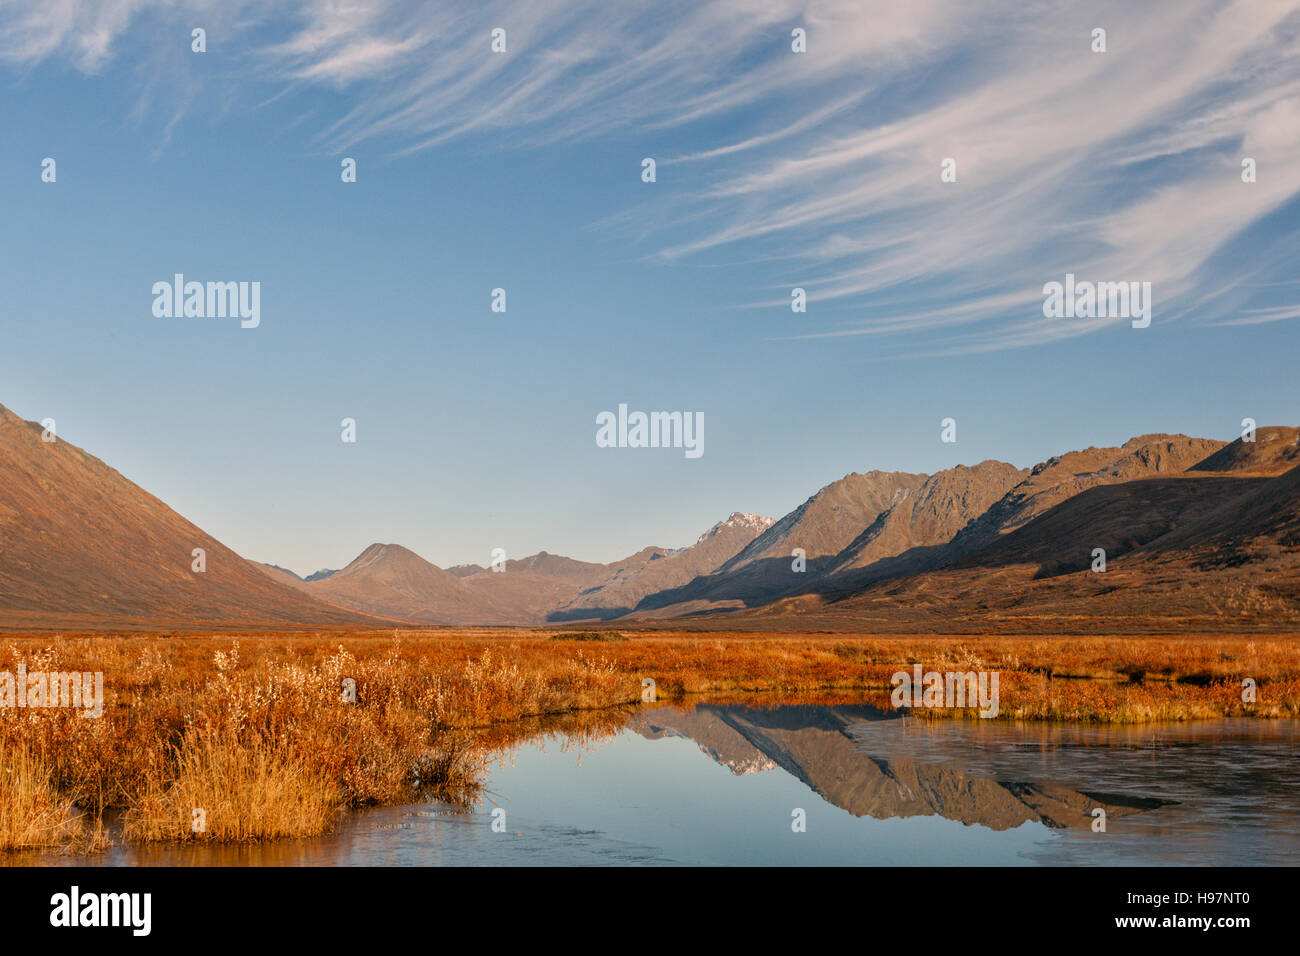 A beaver pond reflecting the fall colors of the Alaskan Range mountains - Stock Image